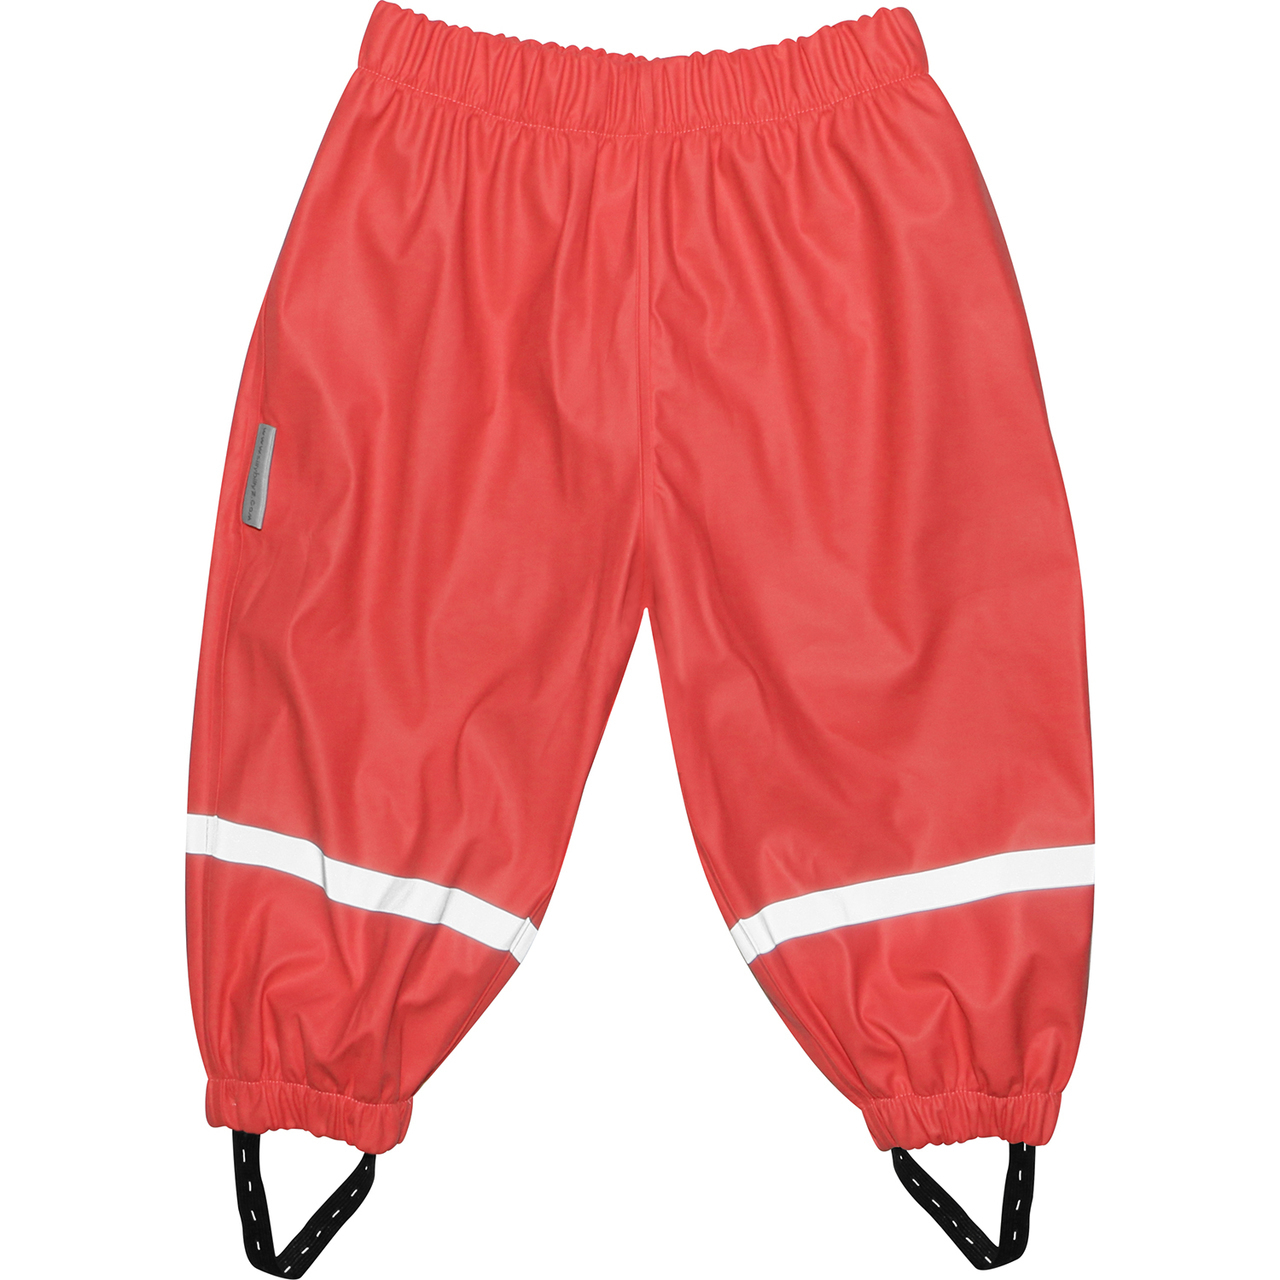 Silly Billyz Waterproof Pants - Red (1-2 Yrs) image